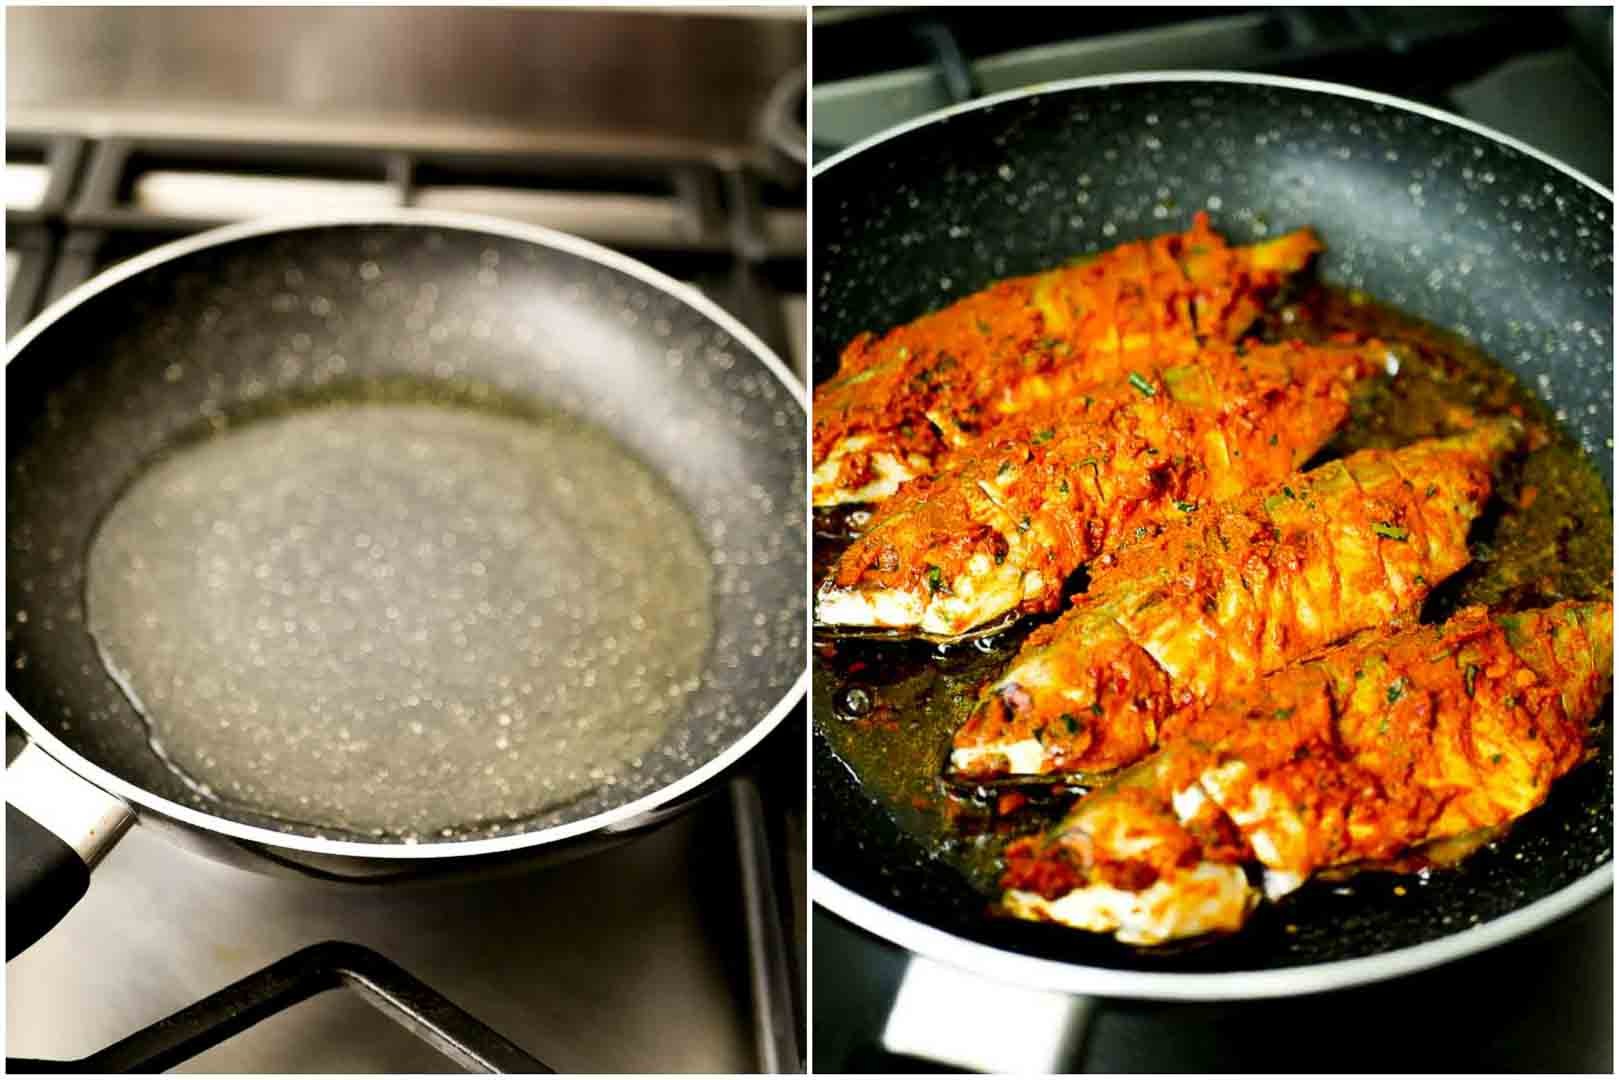 masala-fish-fry-recipe-ayala-meen-Mackerel-fry (7)